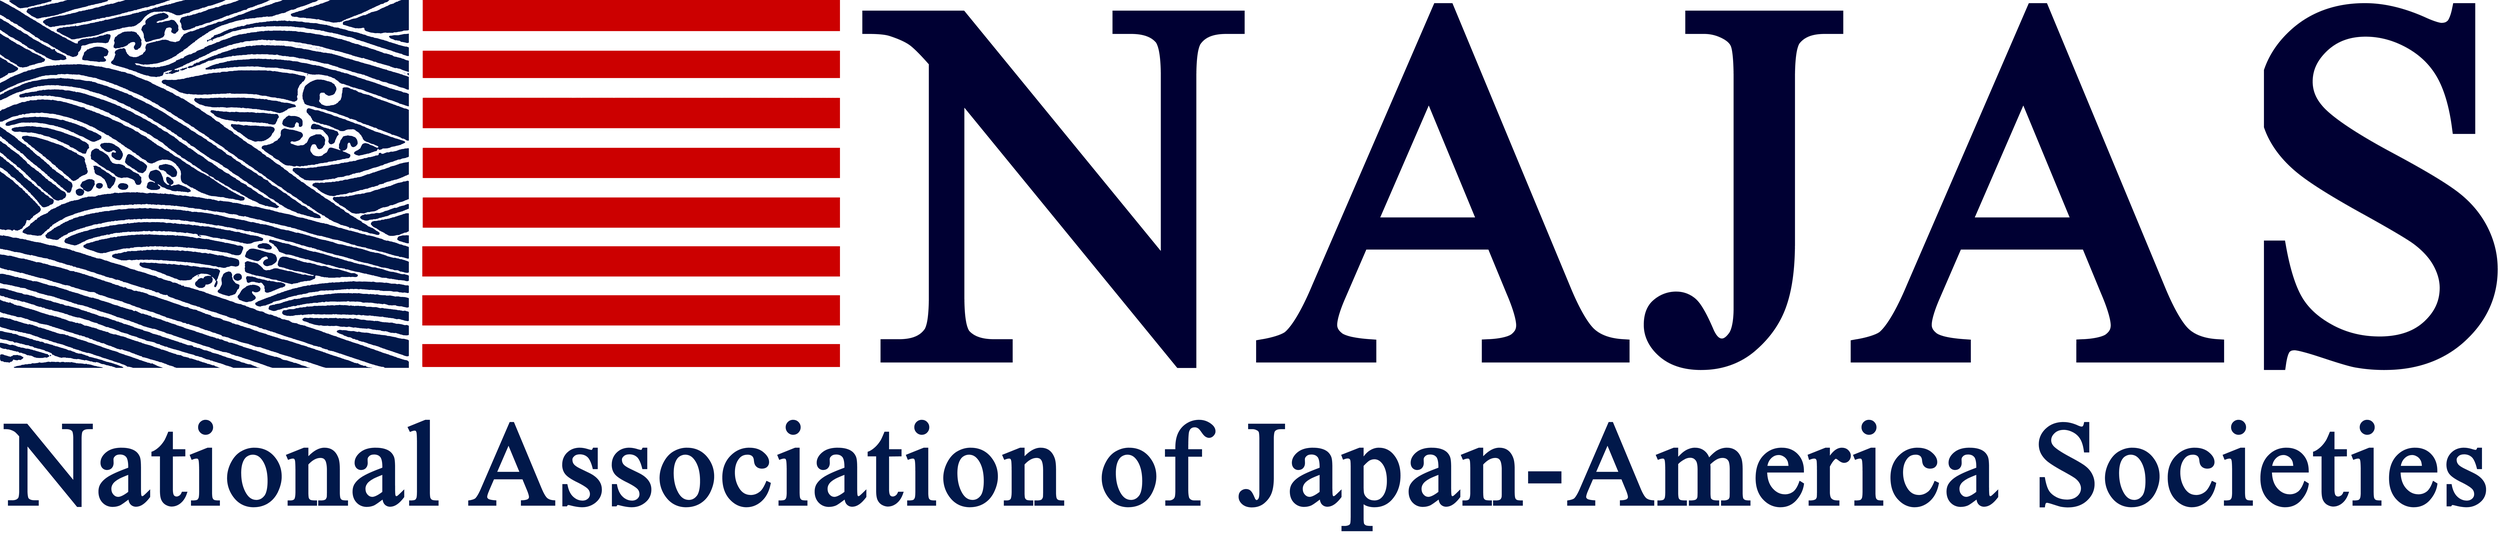 NAJAS logo_small.png